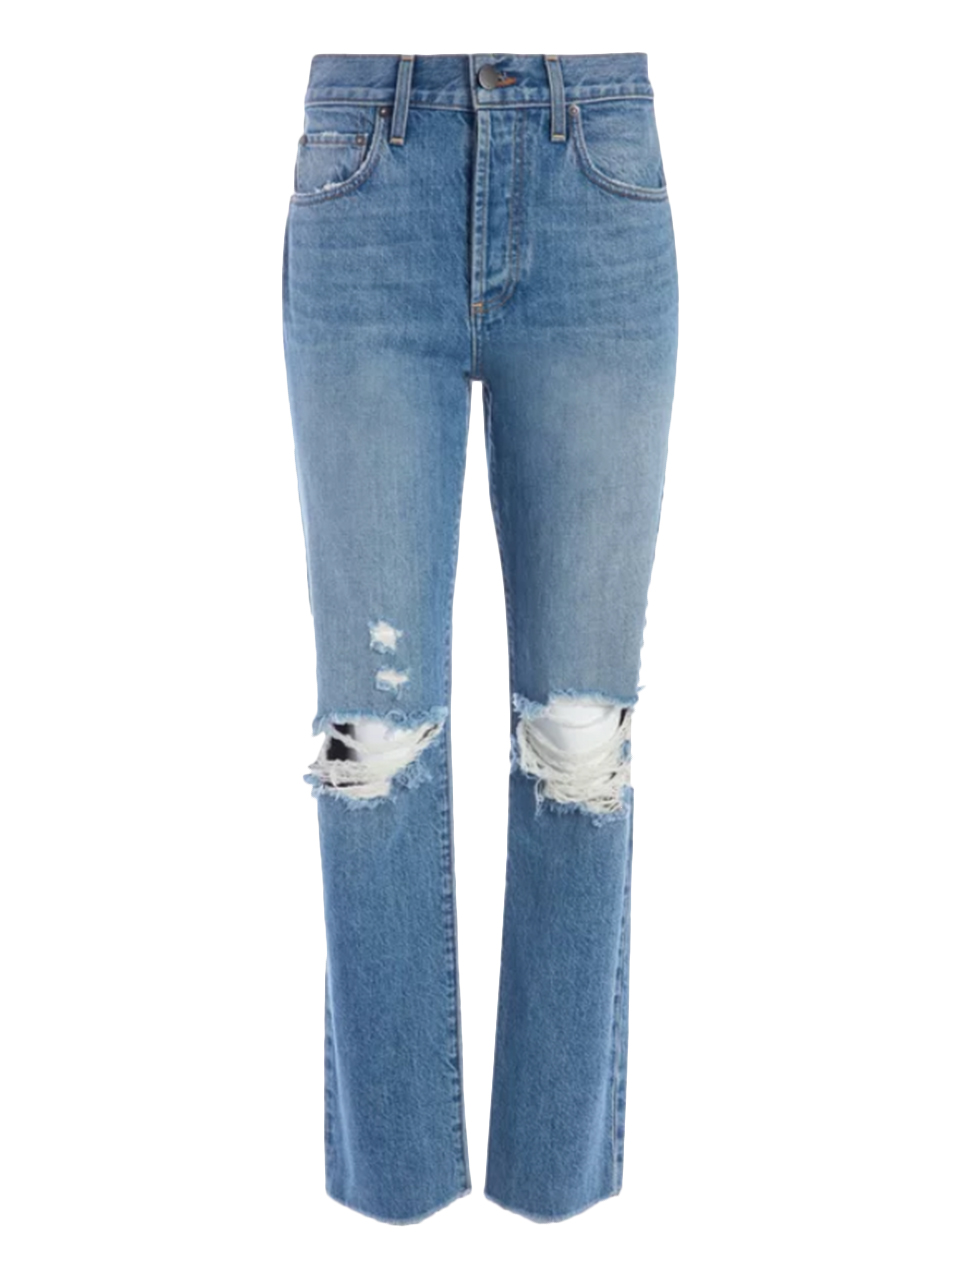 ALICE + OLIVIA Amazing High Rise Boyfriend Jean in Not Yours Product Shot